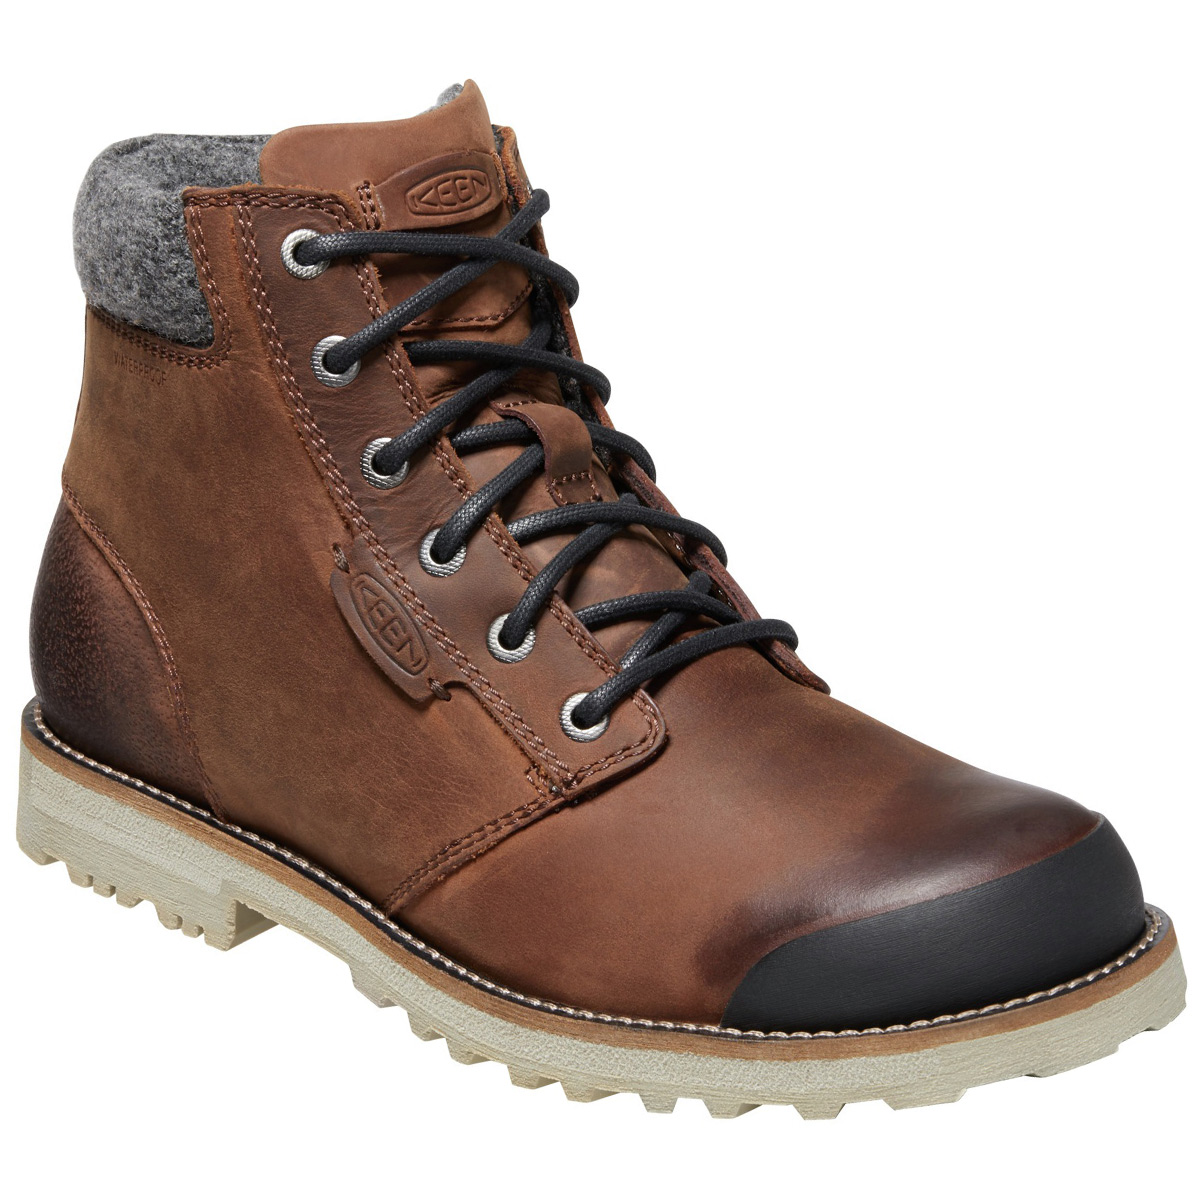 Keen Men's Slater 2 Boot - Brown, 8